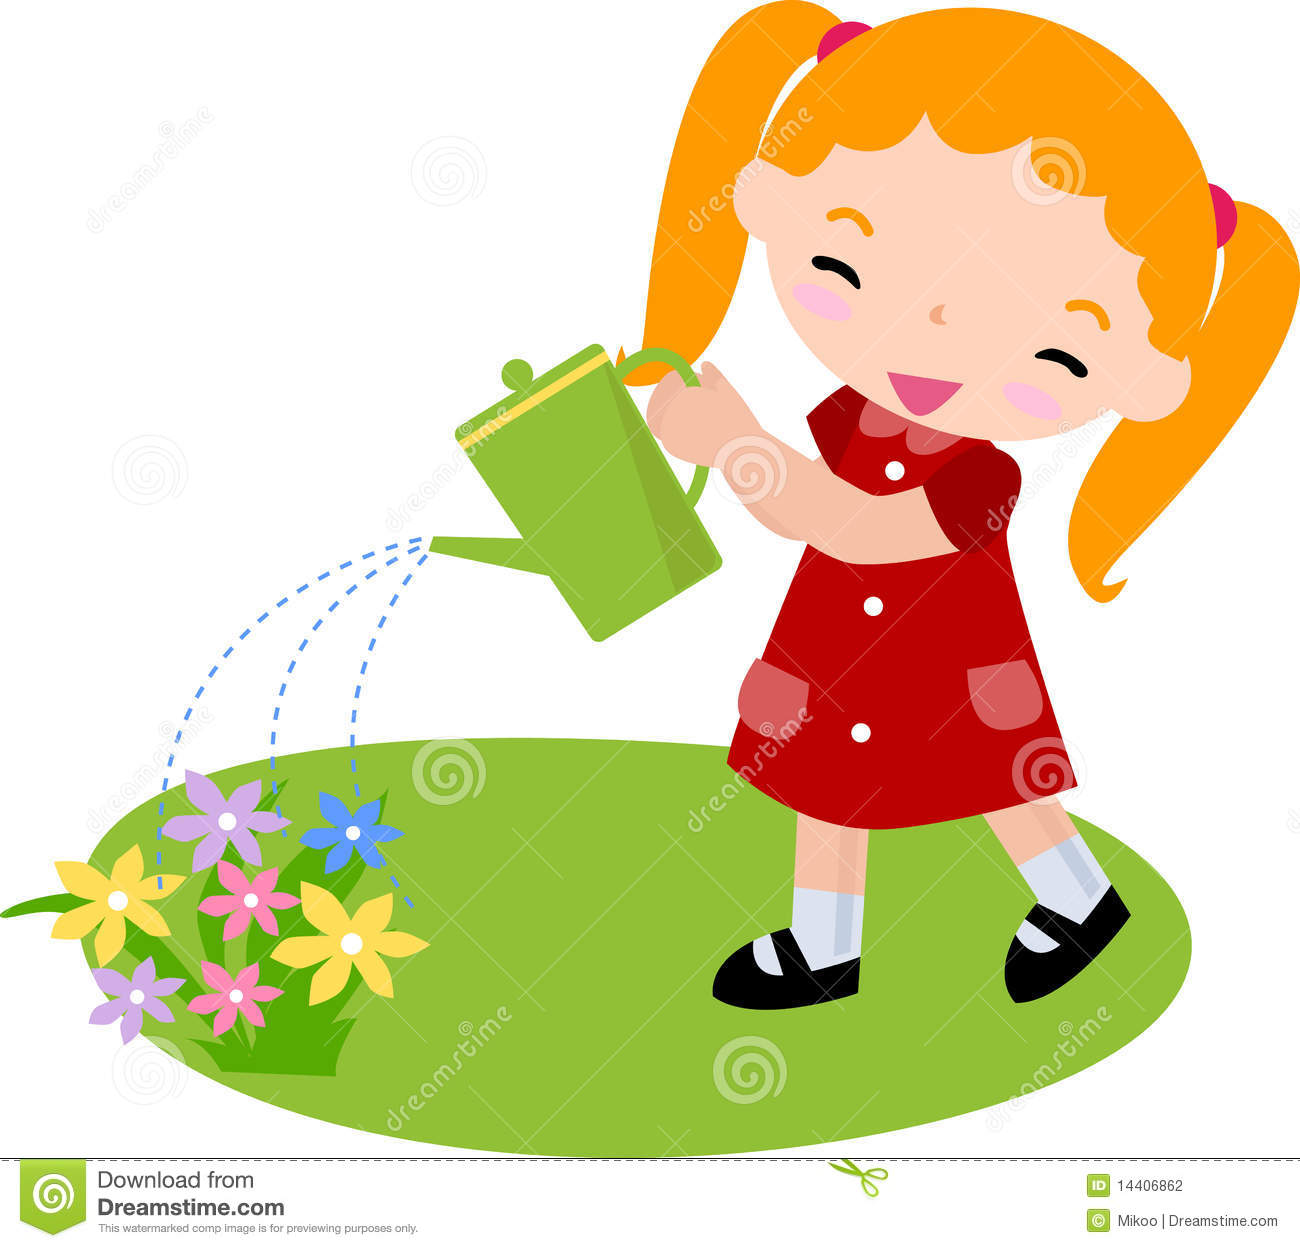 Girl watering plants clipart 1 » Clipart Station.